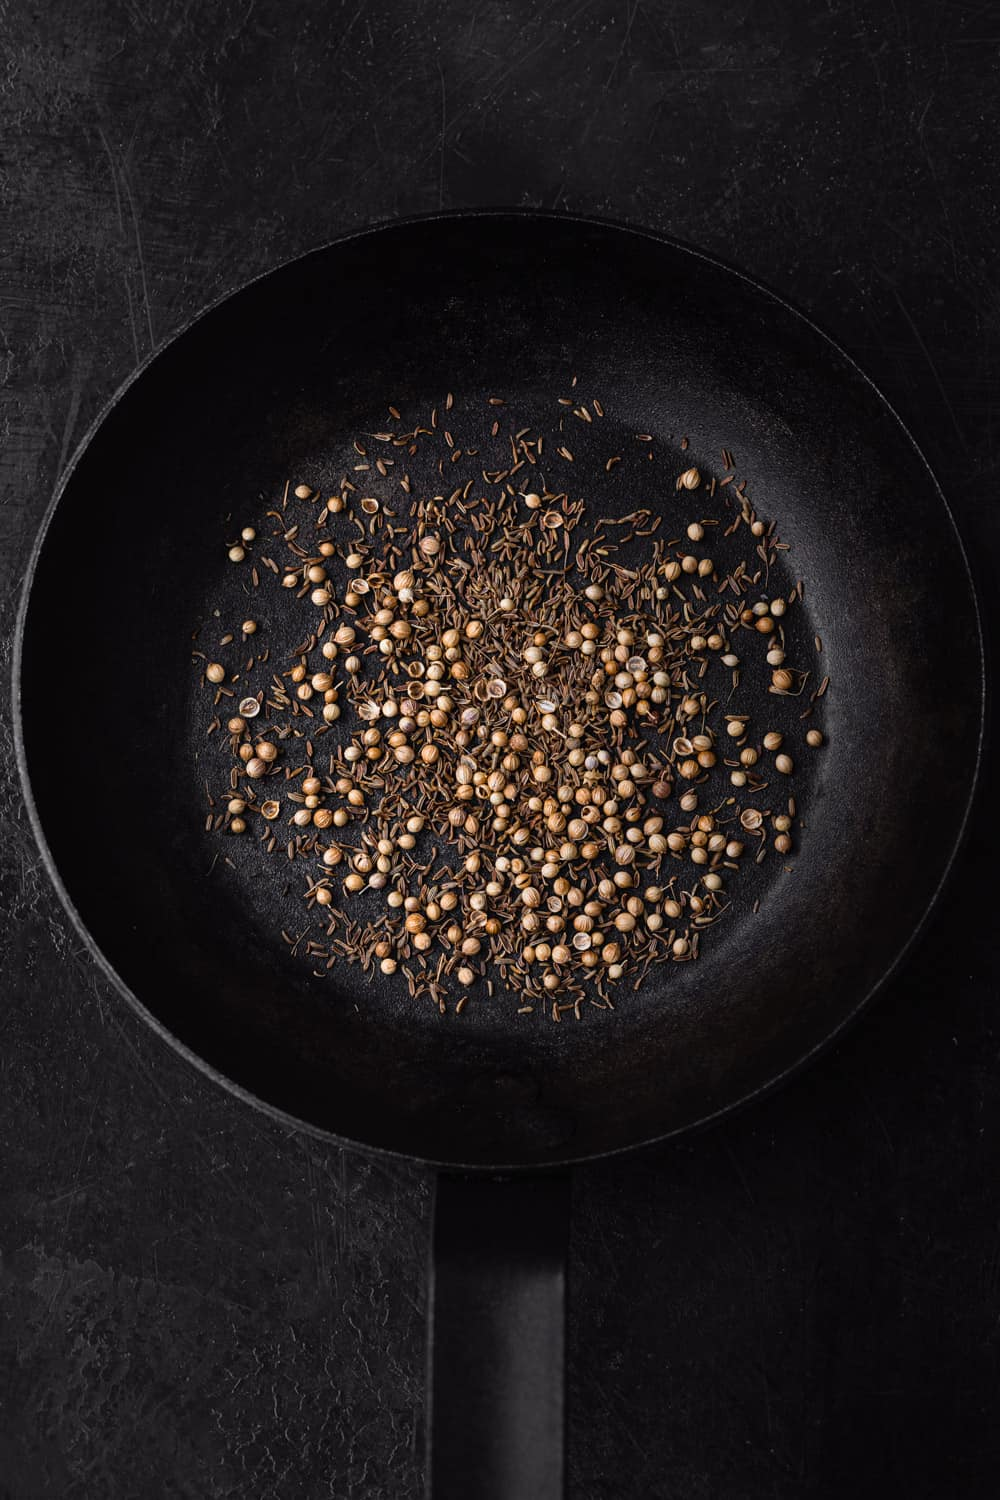 whole coriander and cumin seed, toasted in dry black cast iron skillet on a black background; overhead shot.